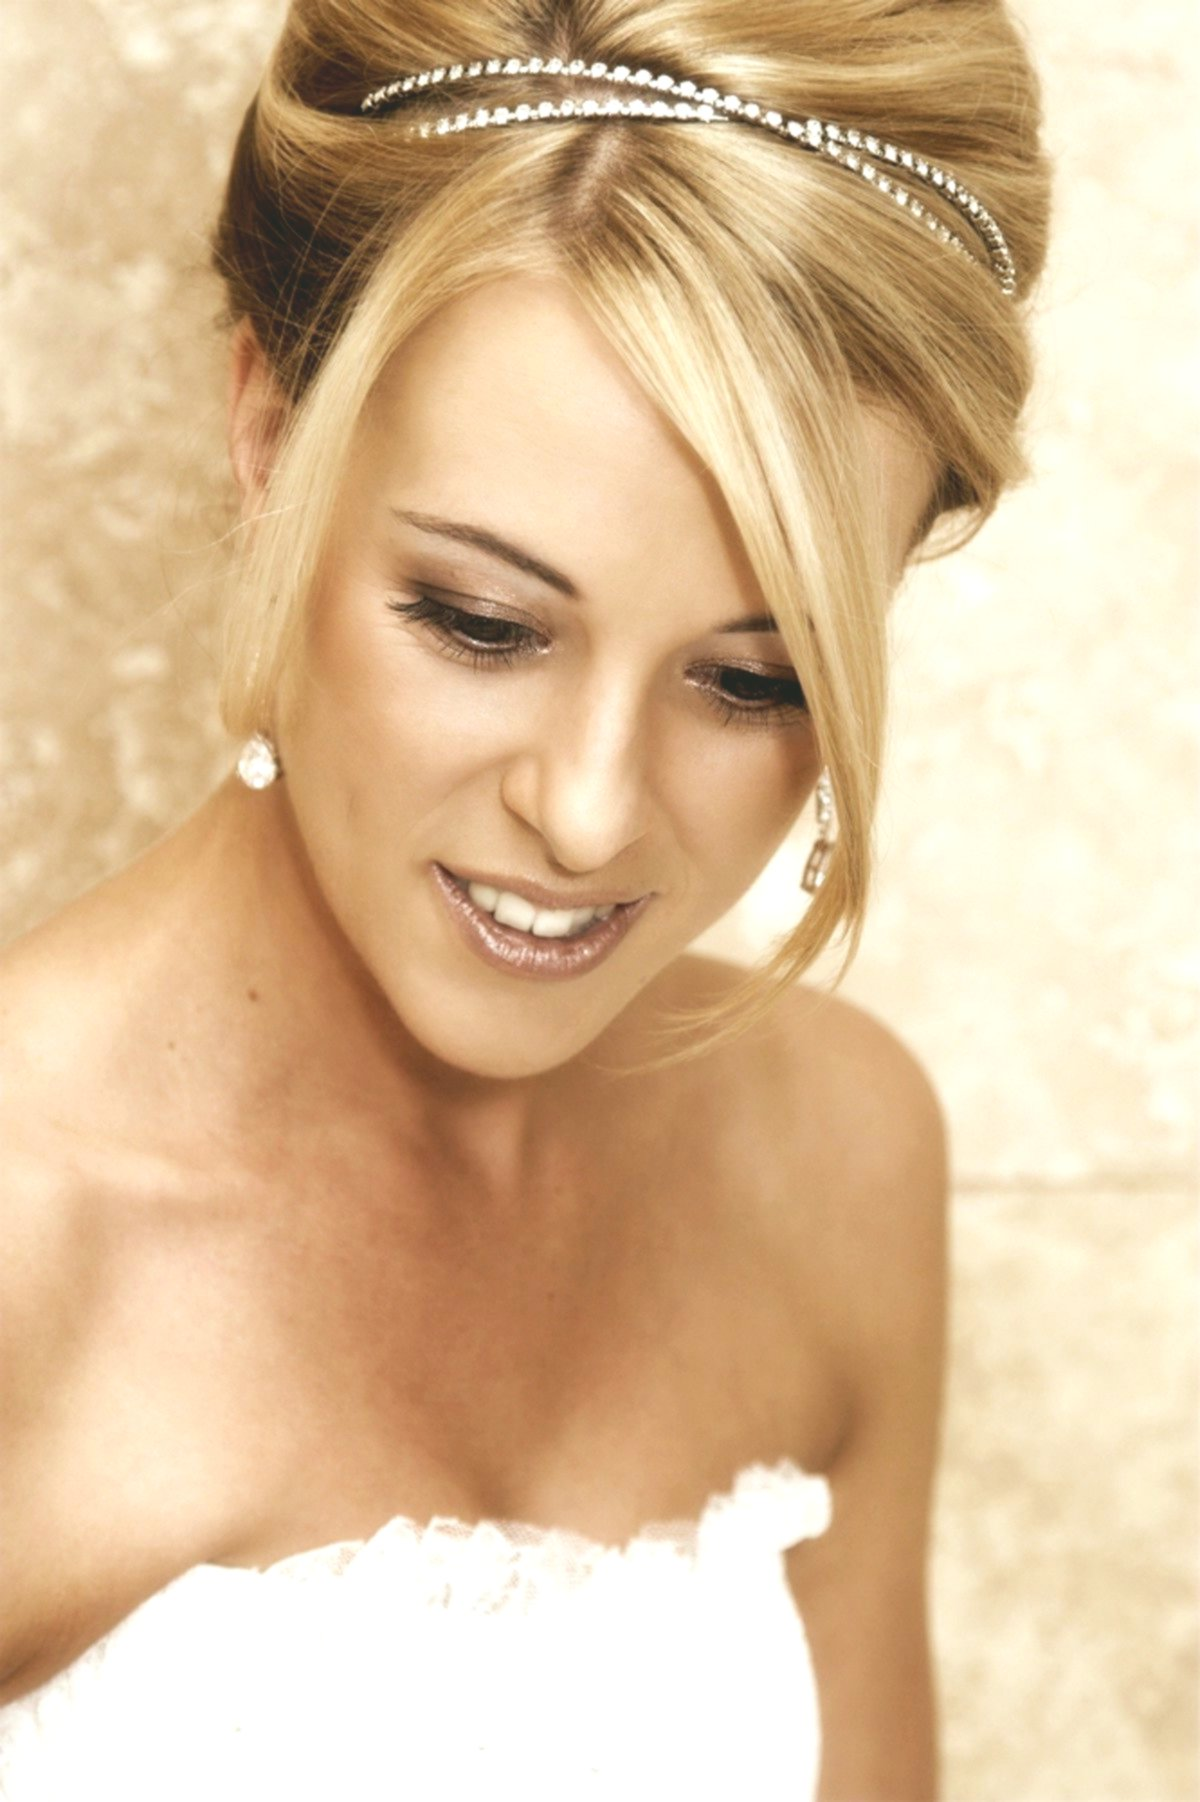 Excellent Short Hair With Pony Background - Luxury Short Hair With Pony Portrait